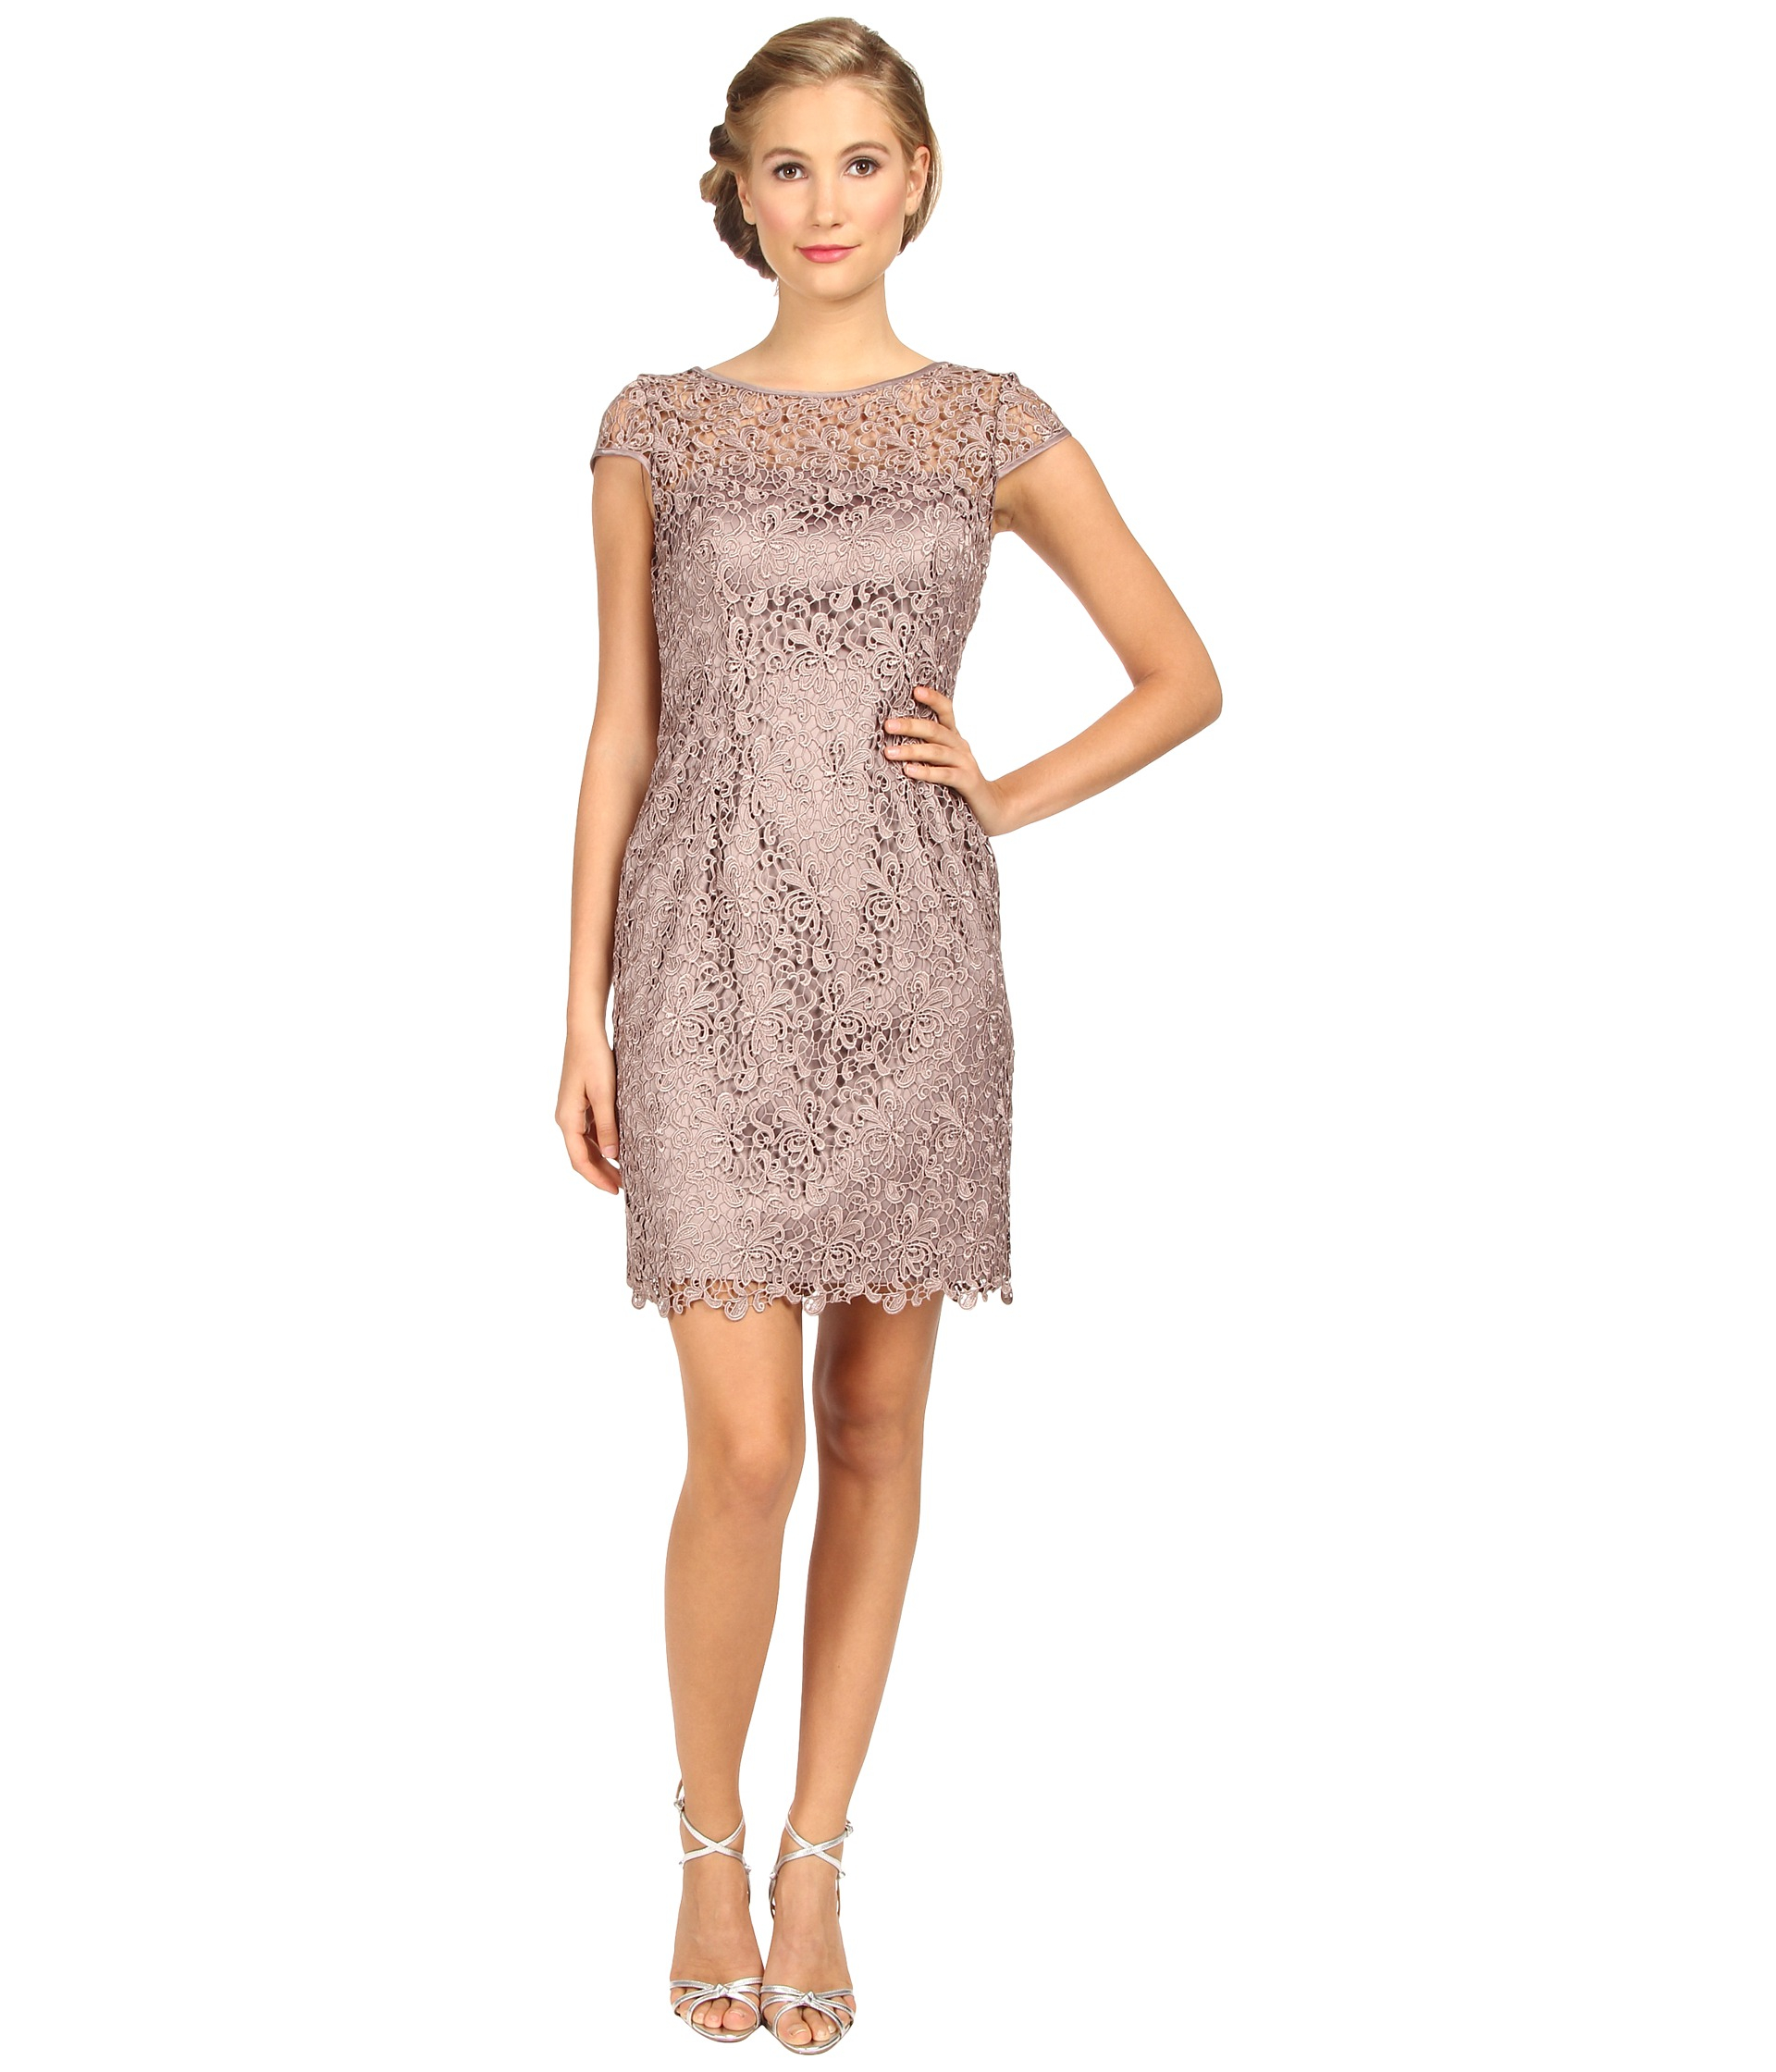 63547d74 Adrianna Papell Womens Lace Sheath Dress Special Occasion